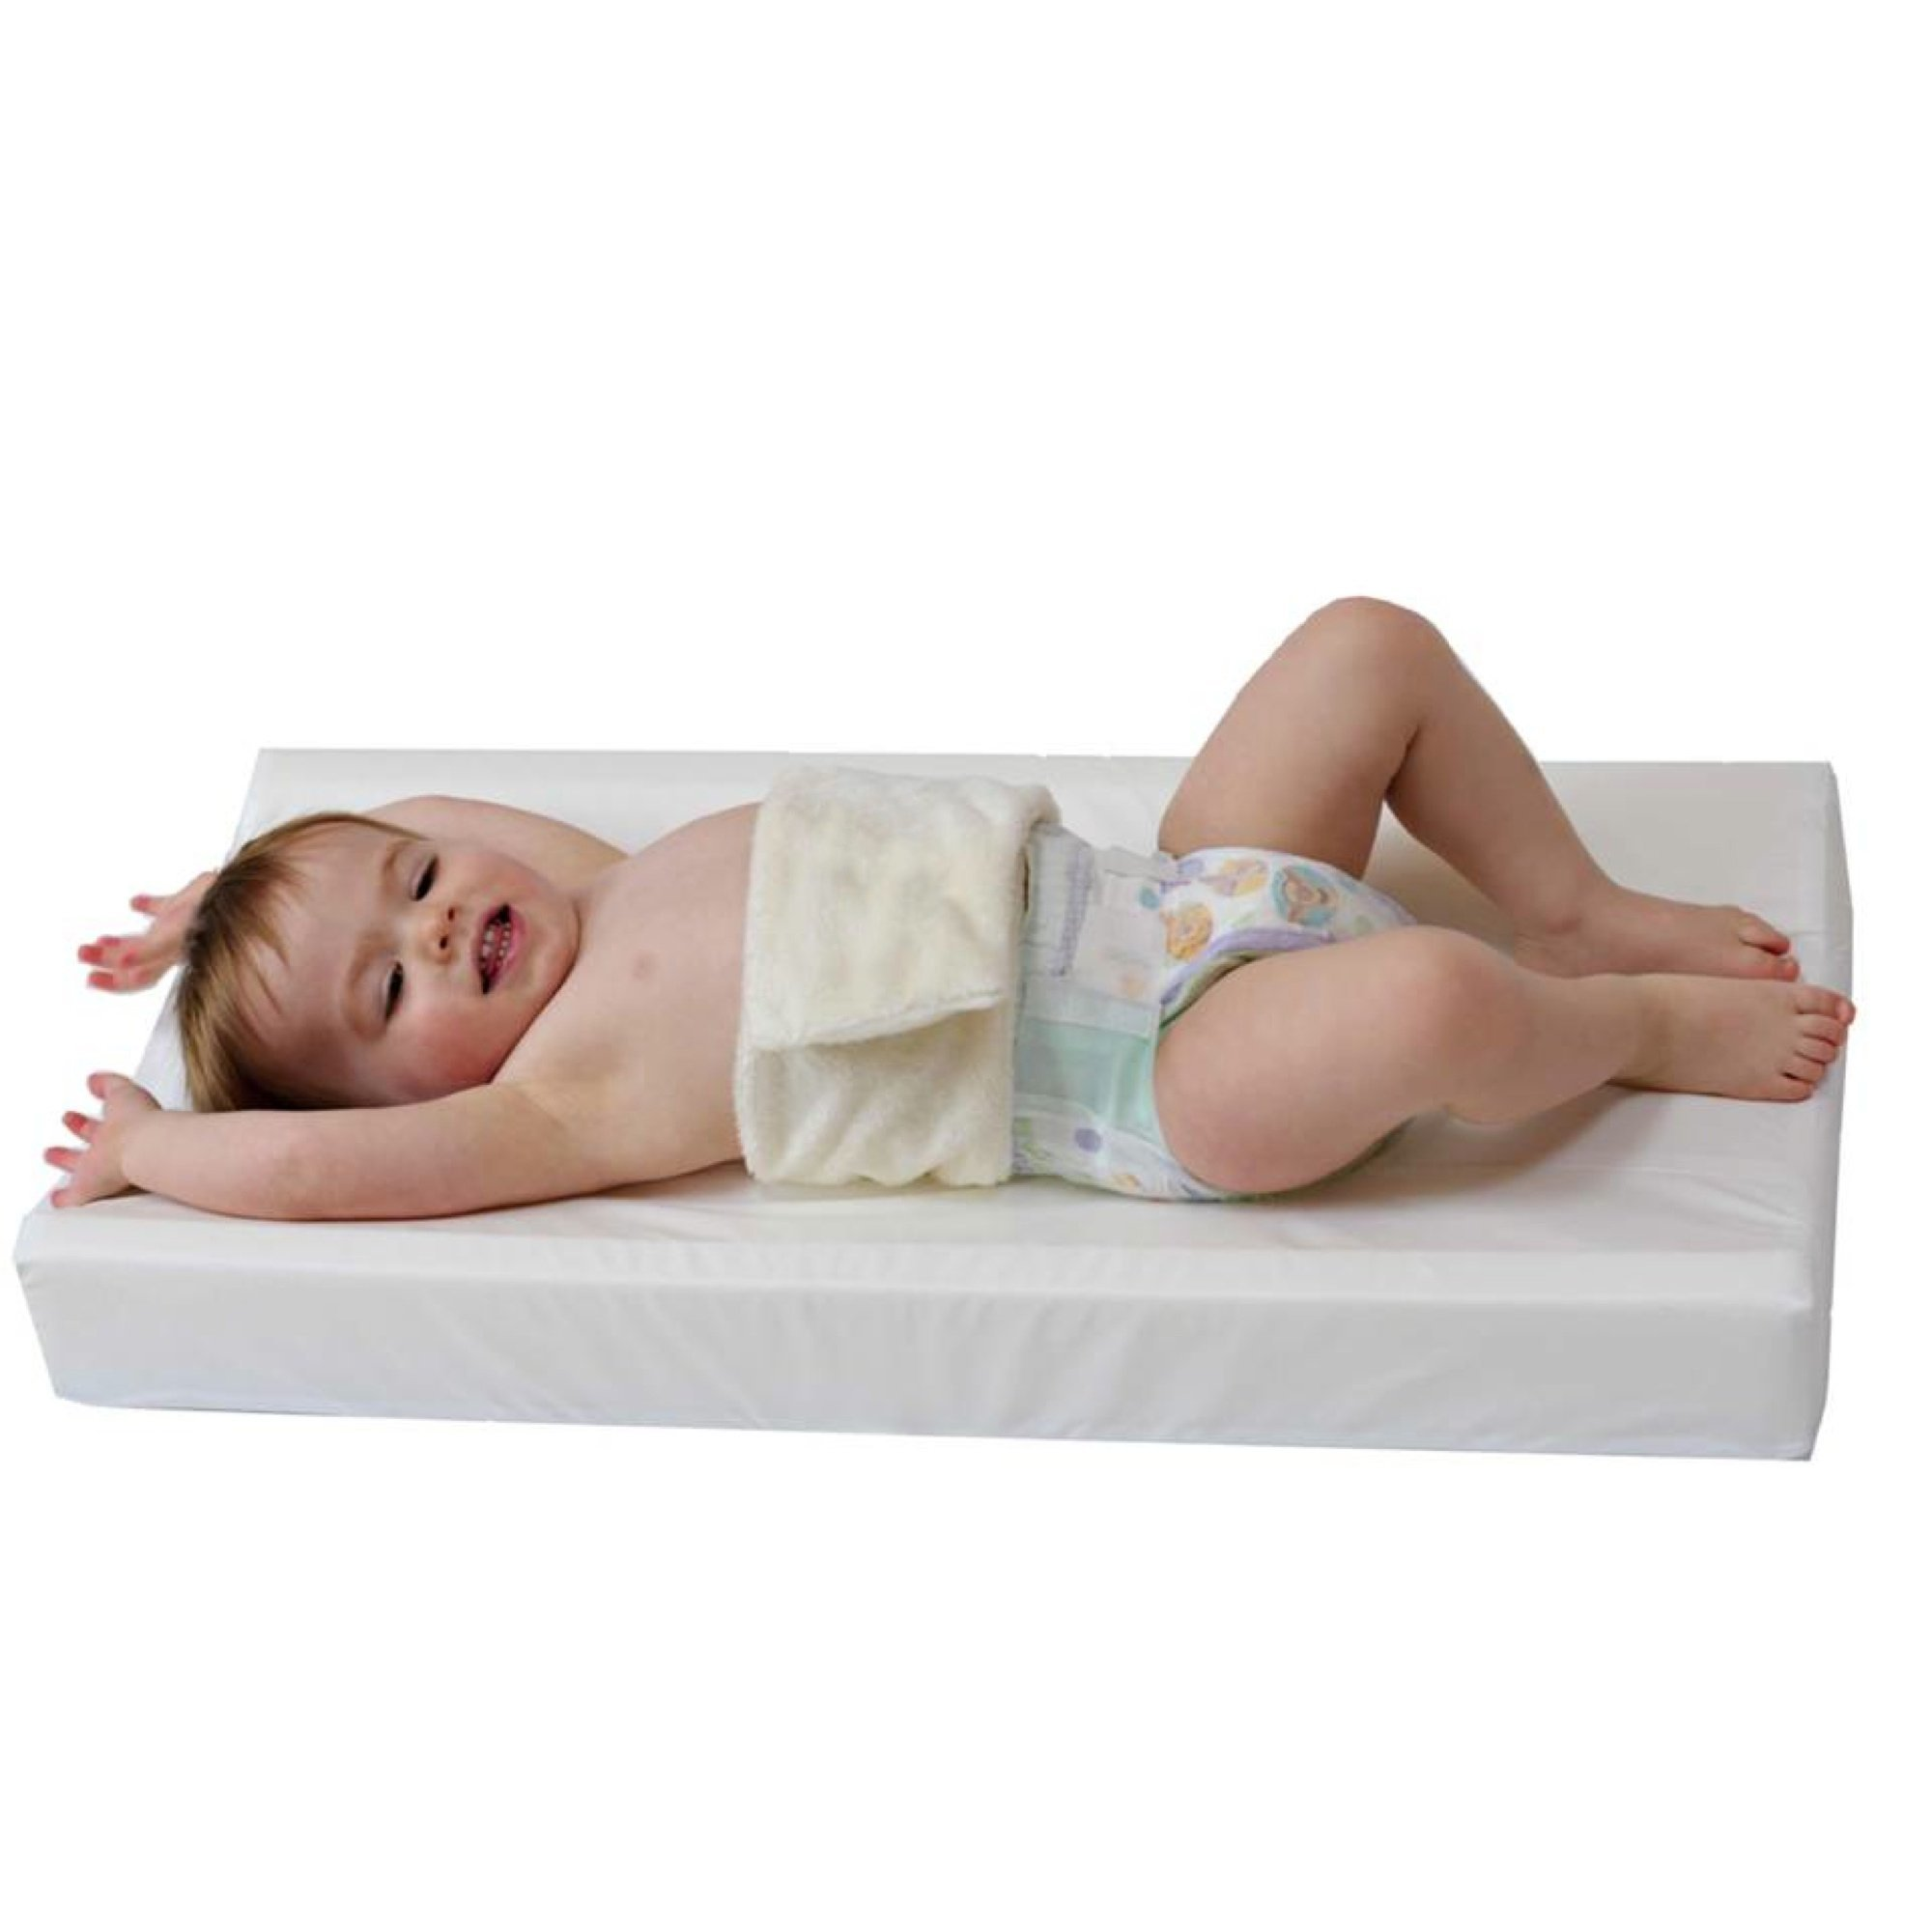 PooPoose Wiggle Free Diaper Changing Pad/ Changing Table Pad, White, 16'' X 32'' X 3.5'' by PooPoose